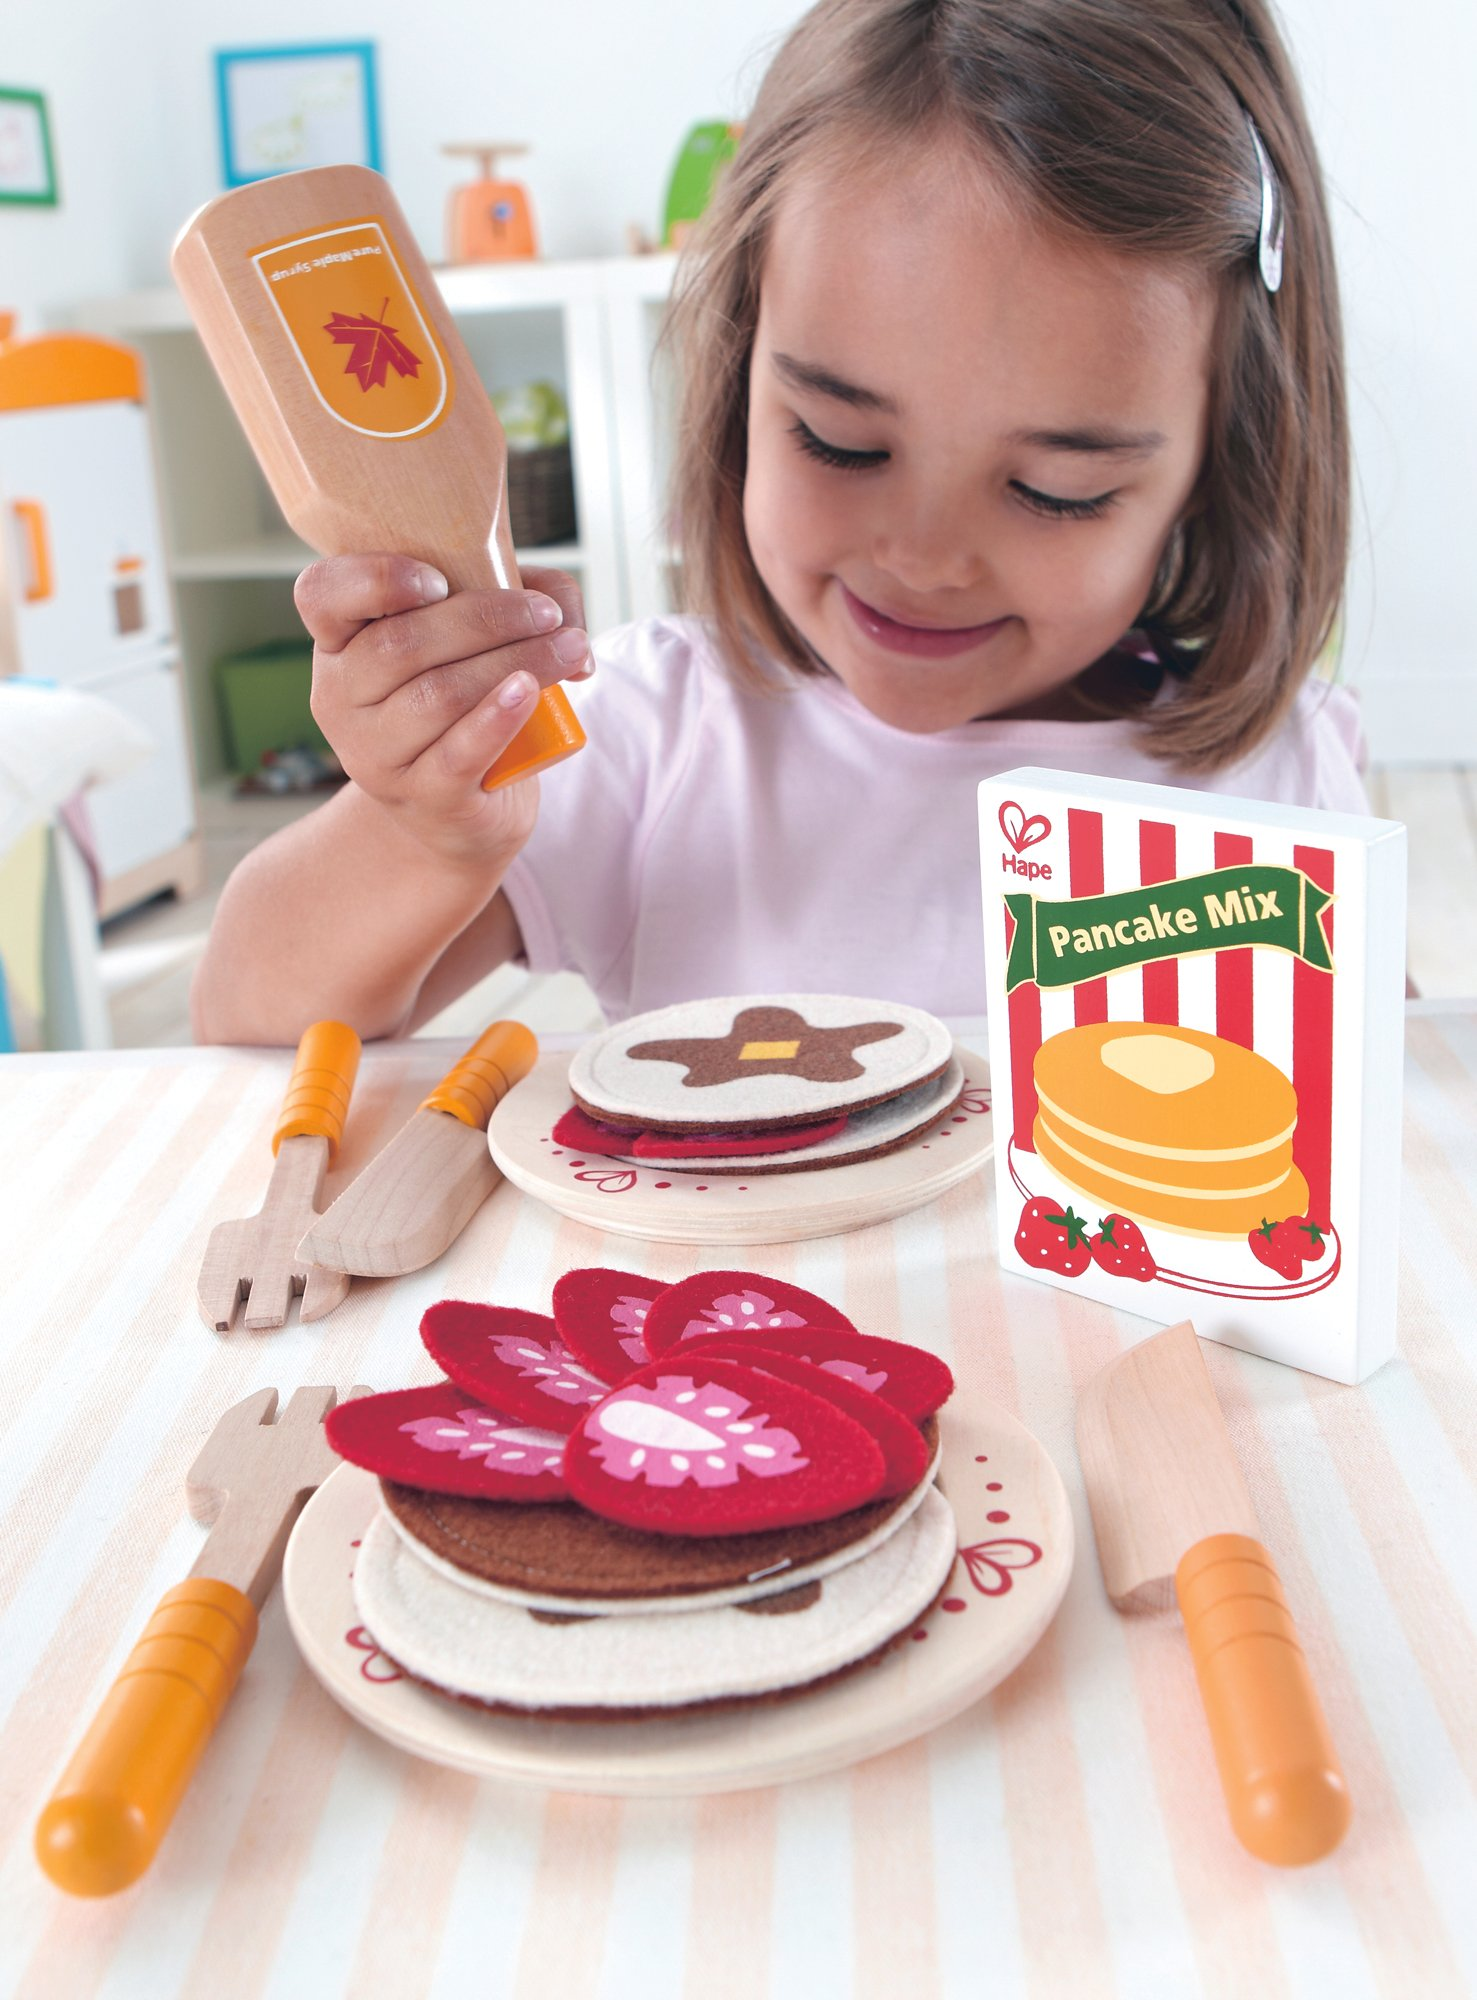 Hape Pancake Breakfast with Strawberries and Syrup Wooden Play Kitchen Food Set and Accessories by Hape (Image #3)